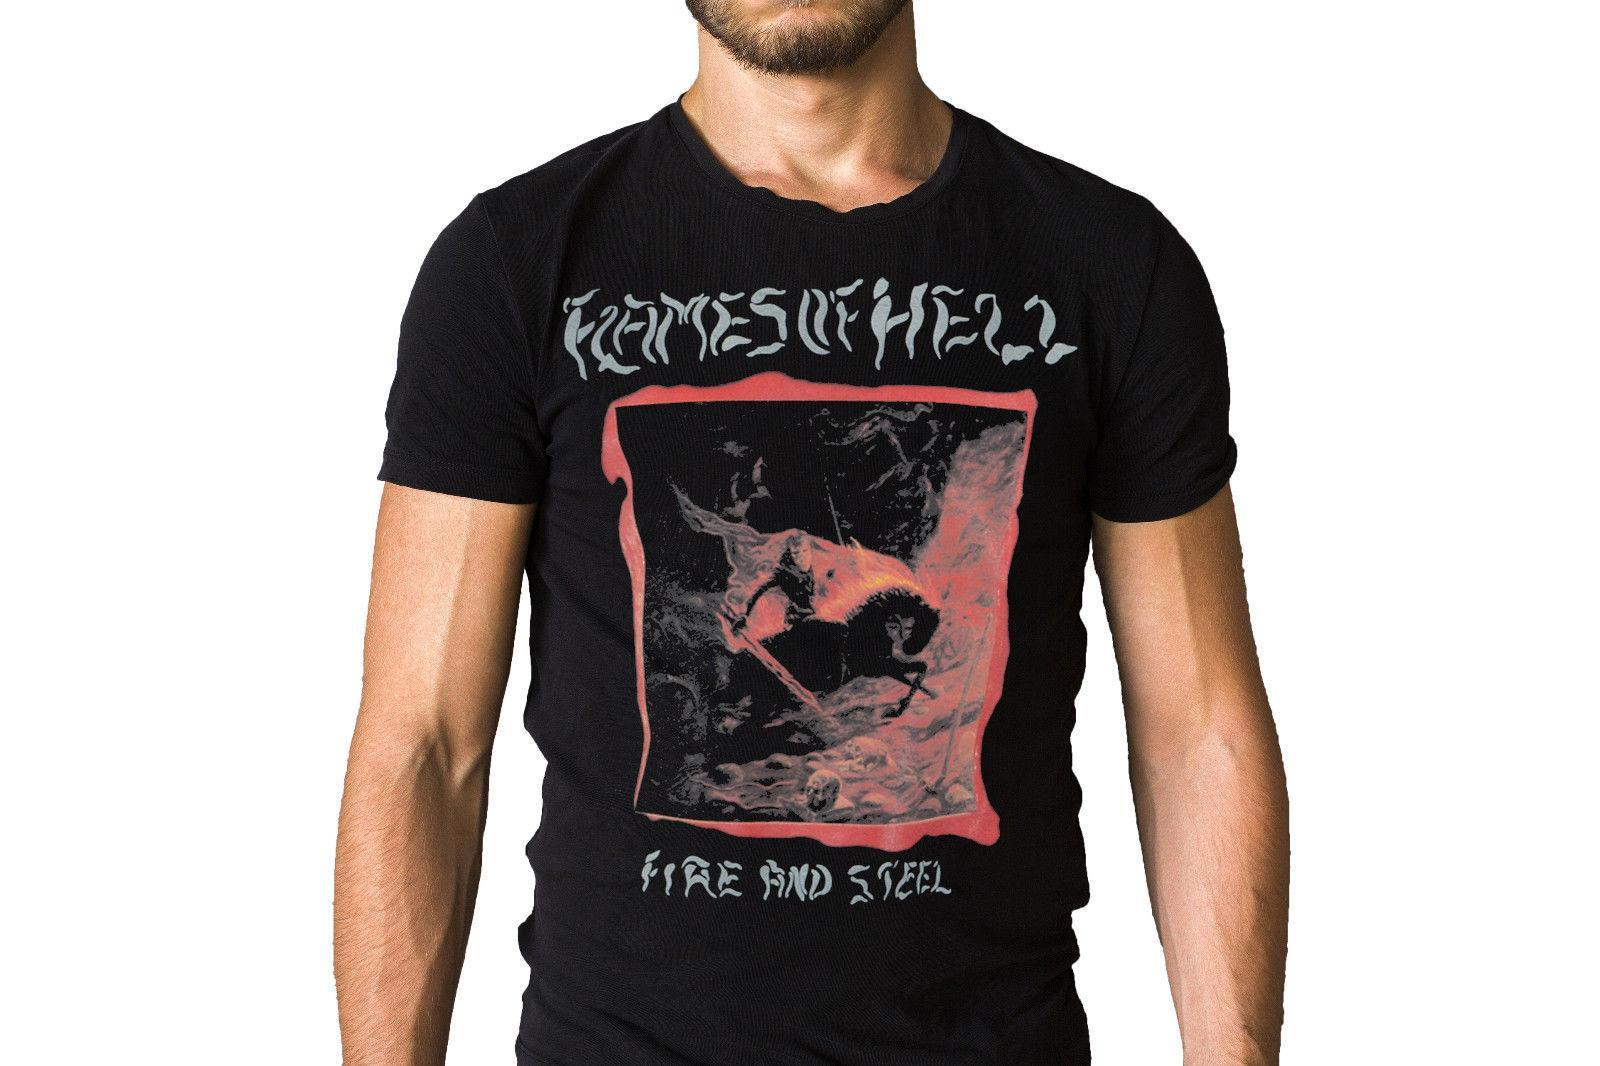 Flammes de l'enfer Fire and Steel 1987 Couverture d'album T-shirt Taille Discout Chaud Nouveau T-shirt Fan Pantalon T-shirt